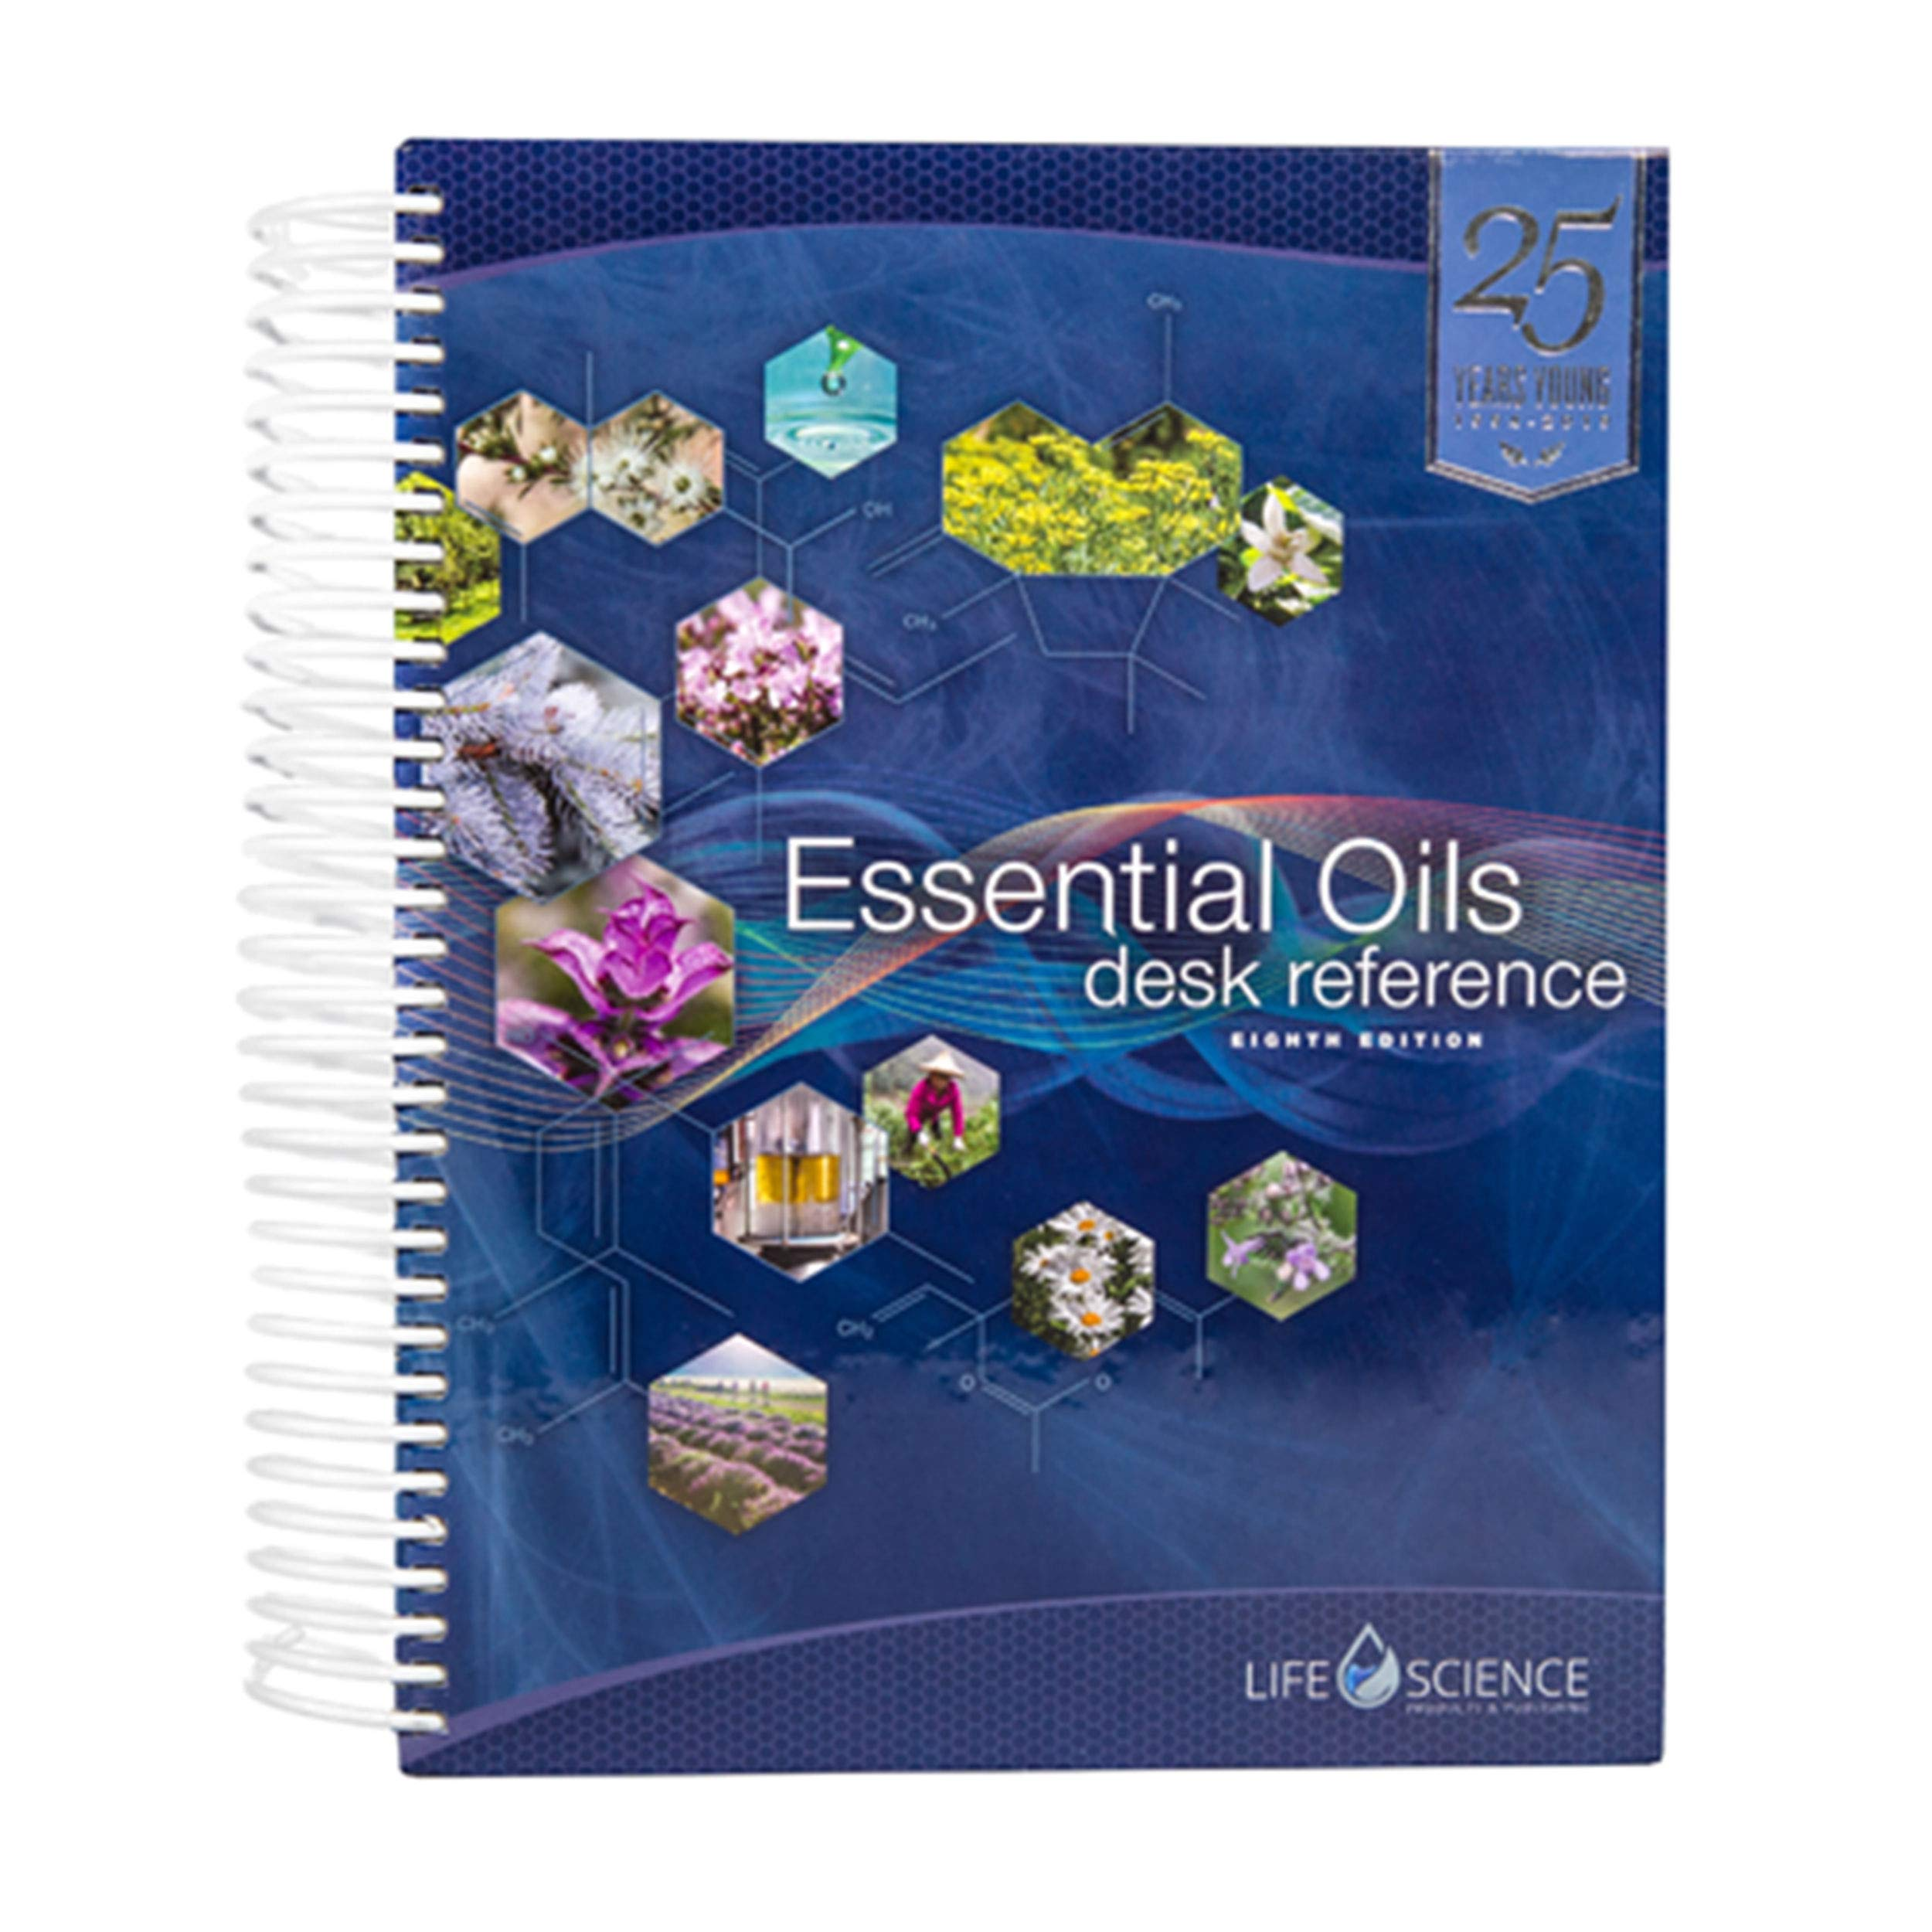 Essential Oils Desk Reference 8th Edition FULL-COLOR (2019) by Life Science Publishing